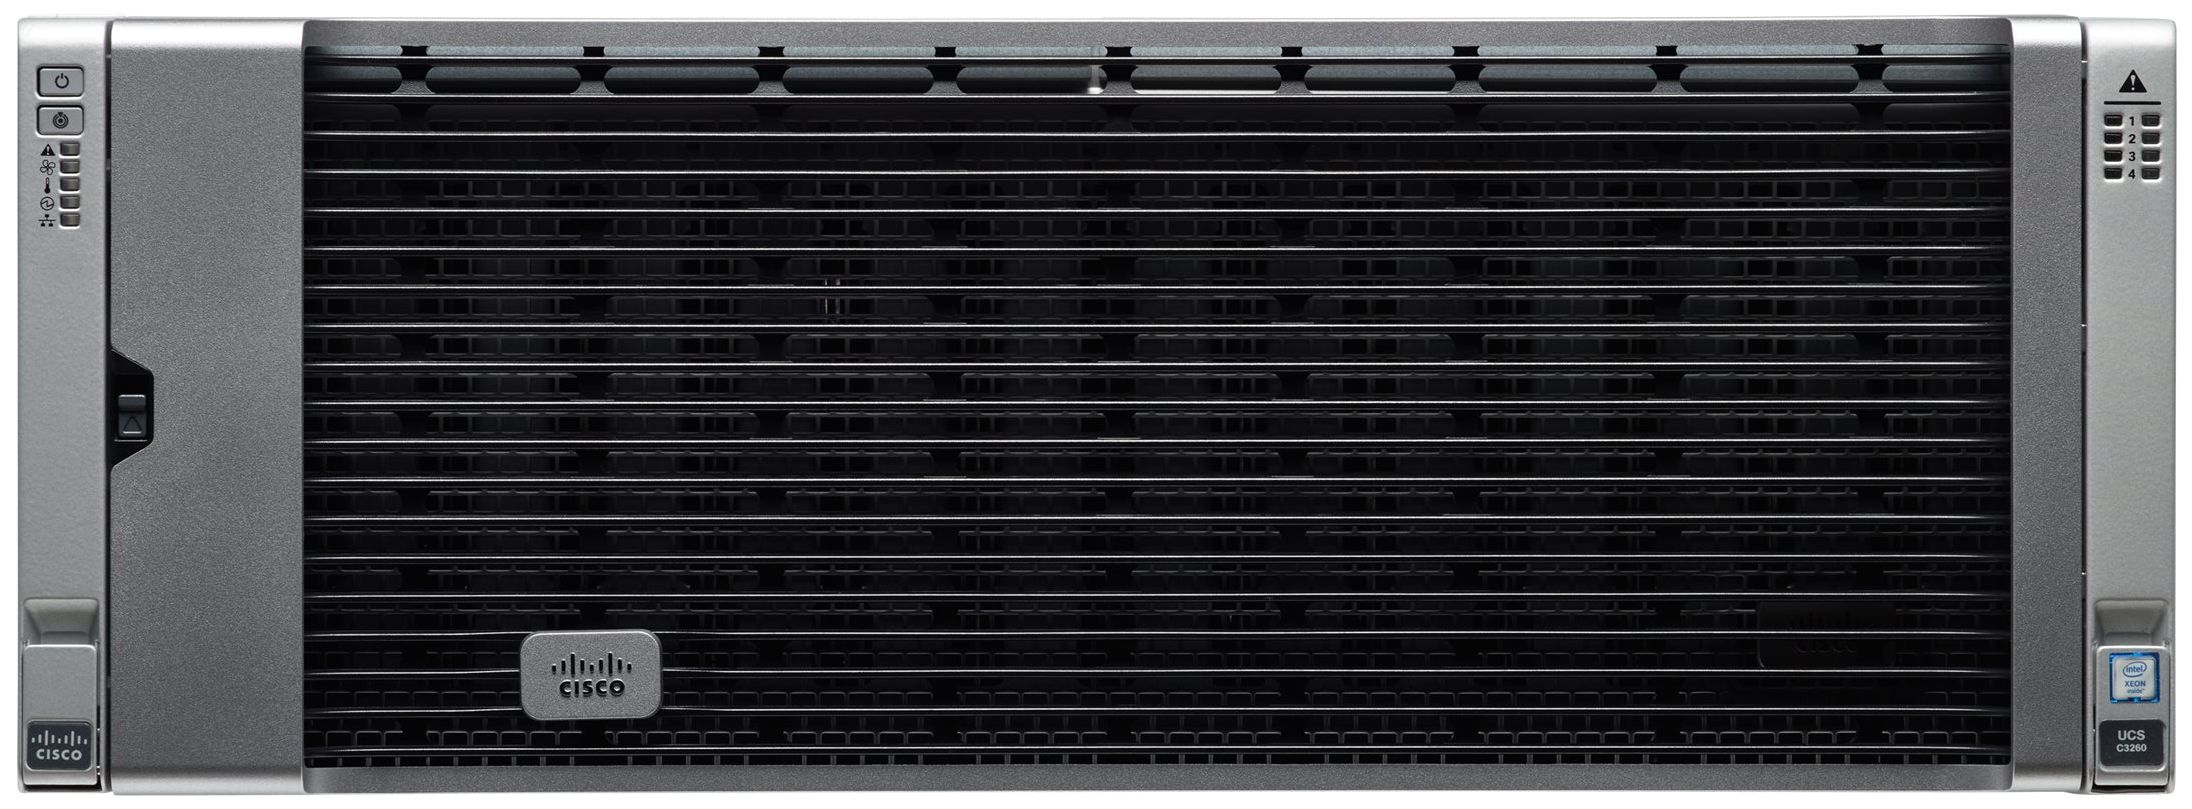 Cisco UCS C3260 Bezel